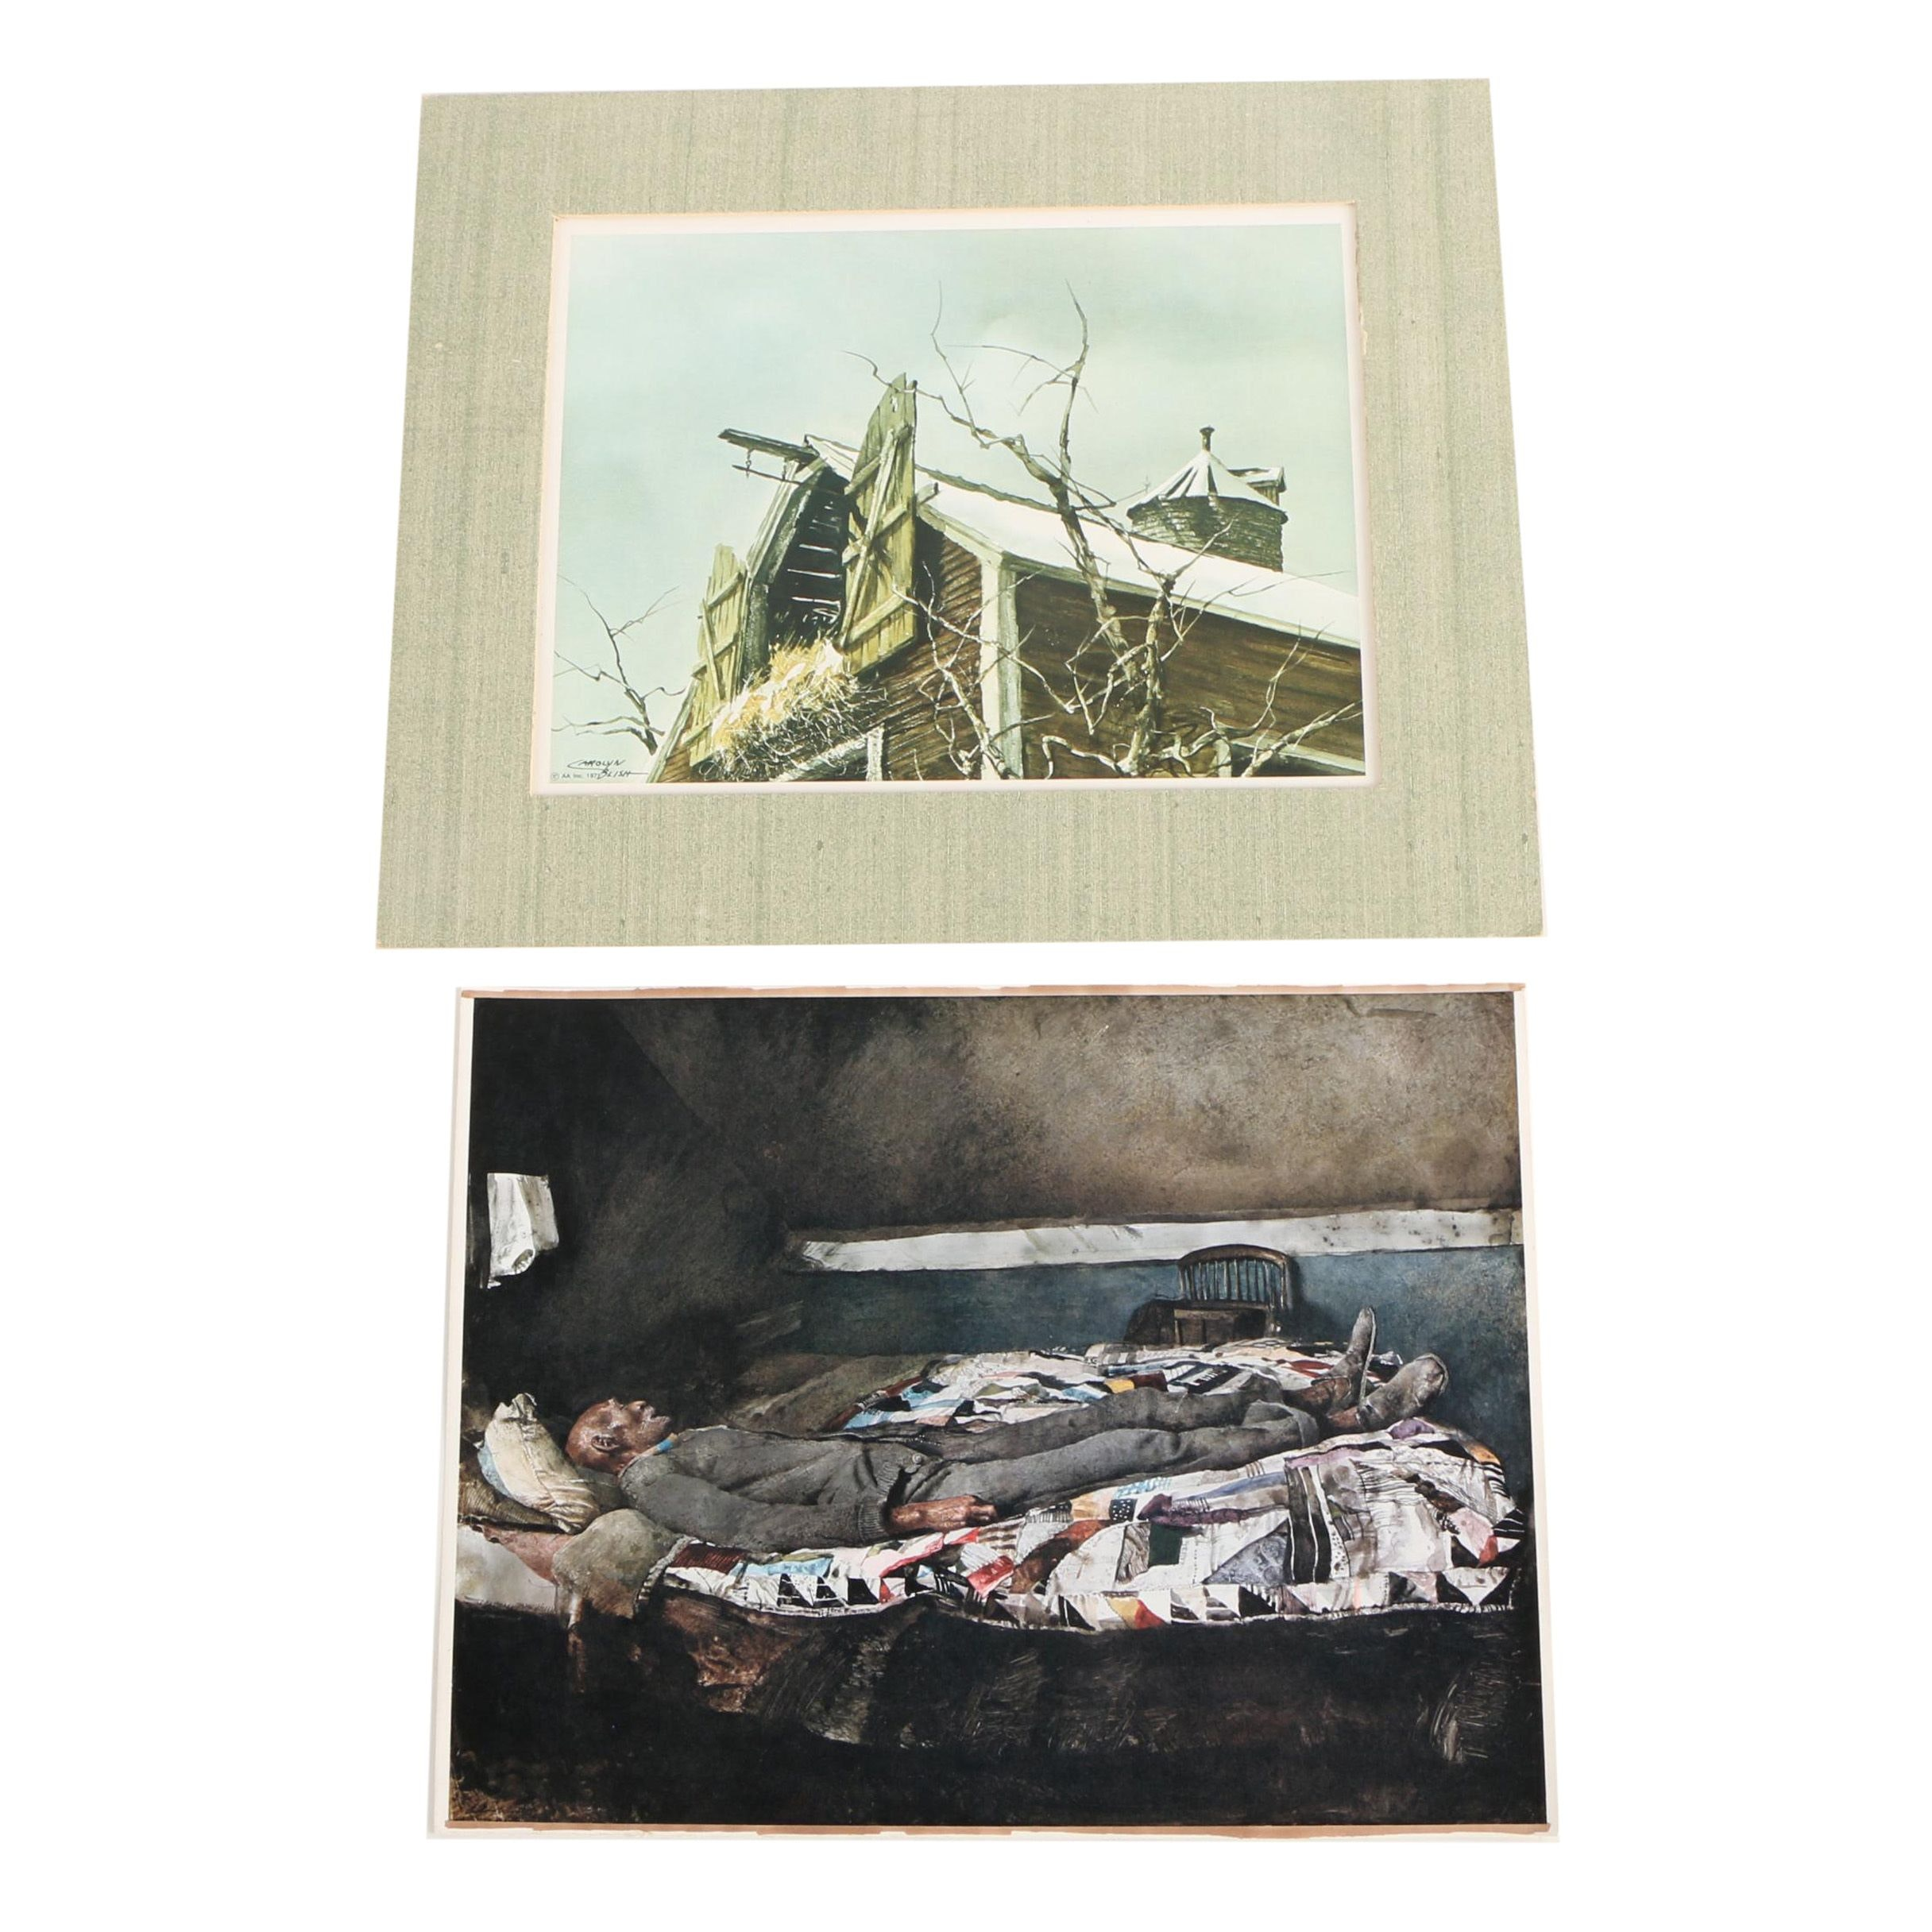 Rotogravure Prints After Andrew Wyeth and Carolyn Blish